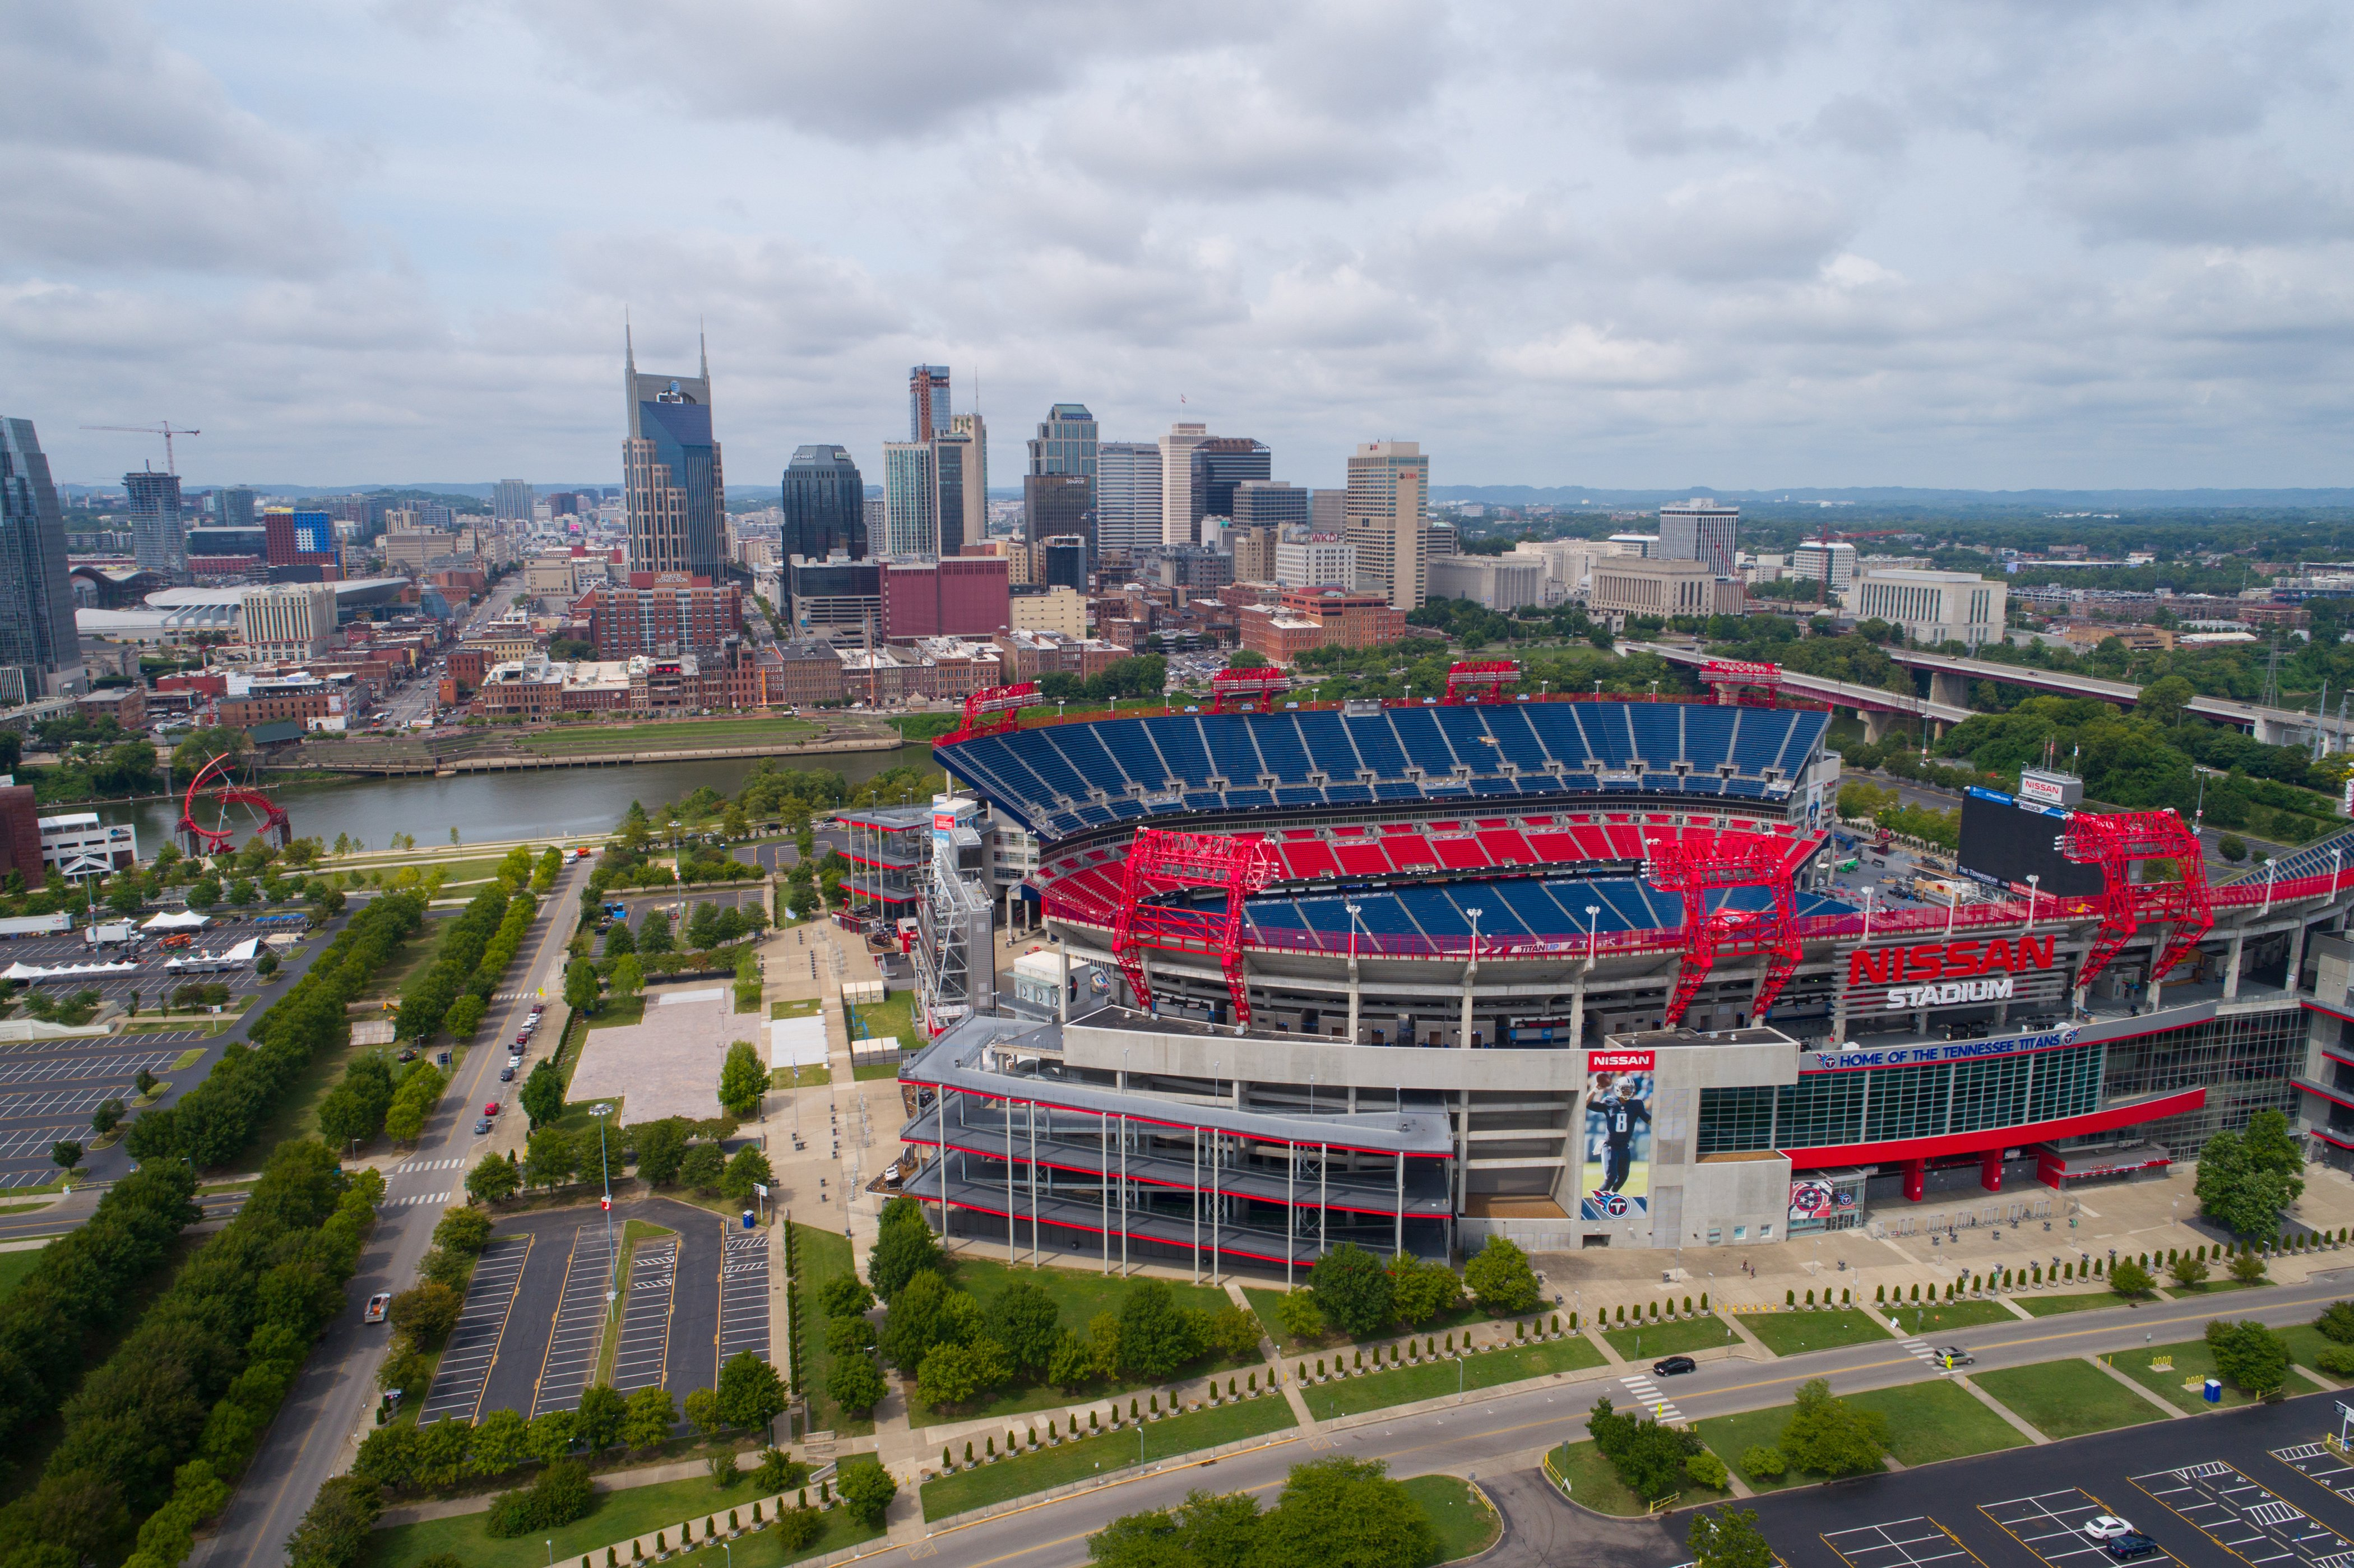 NASHVILLE, TN, USA - AUGUST 10, 2017: Aerial drone photo of the Nissan Football Stadium